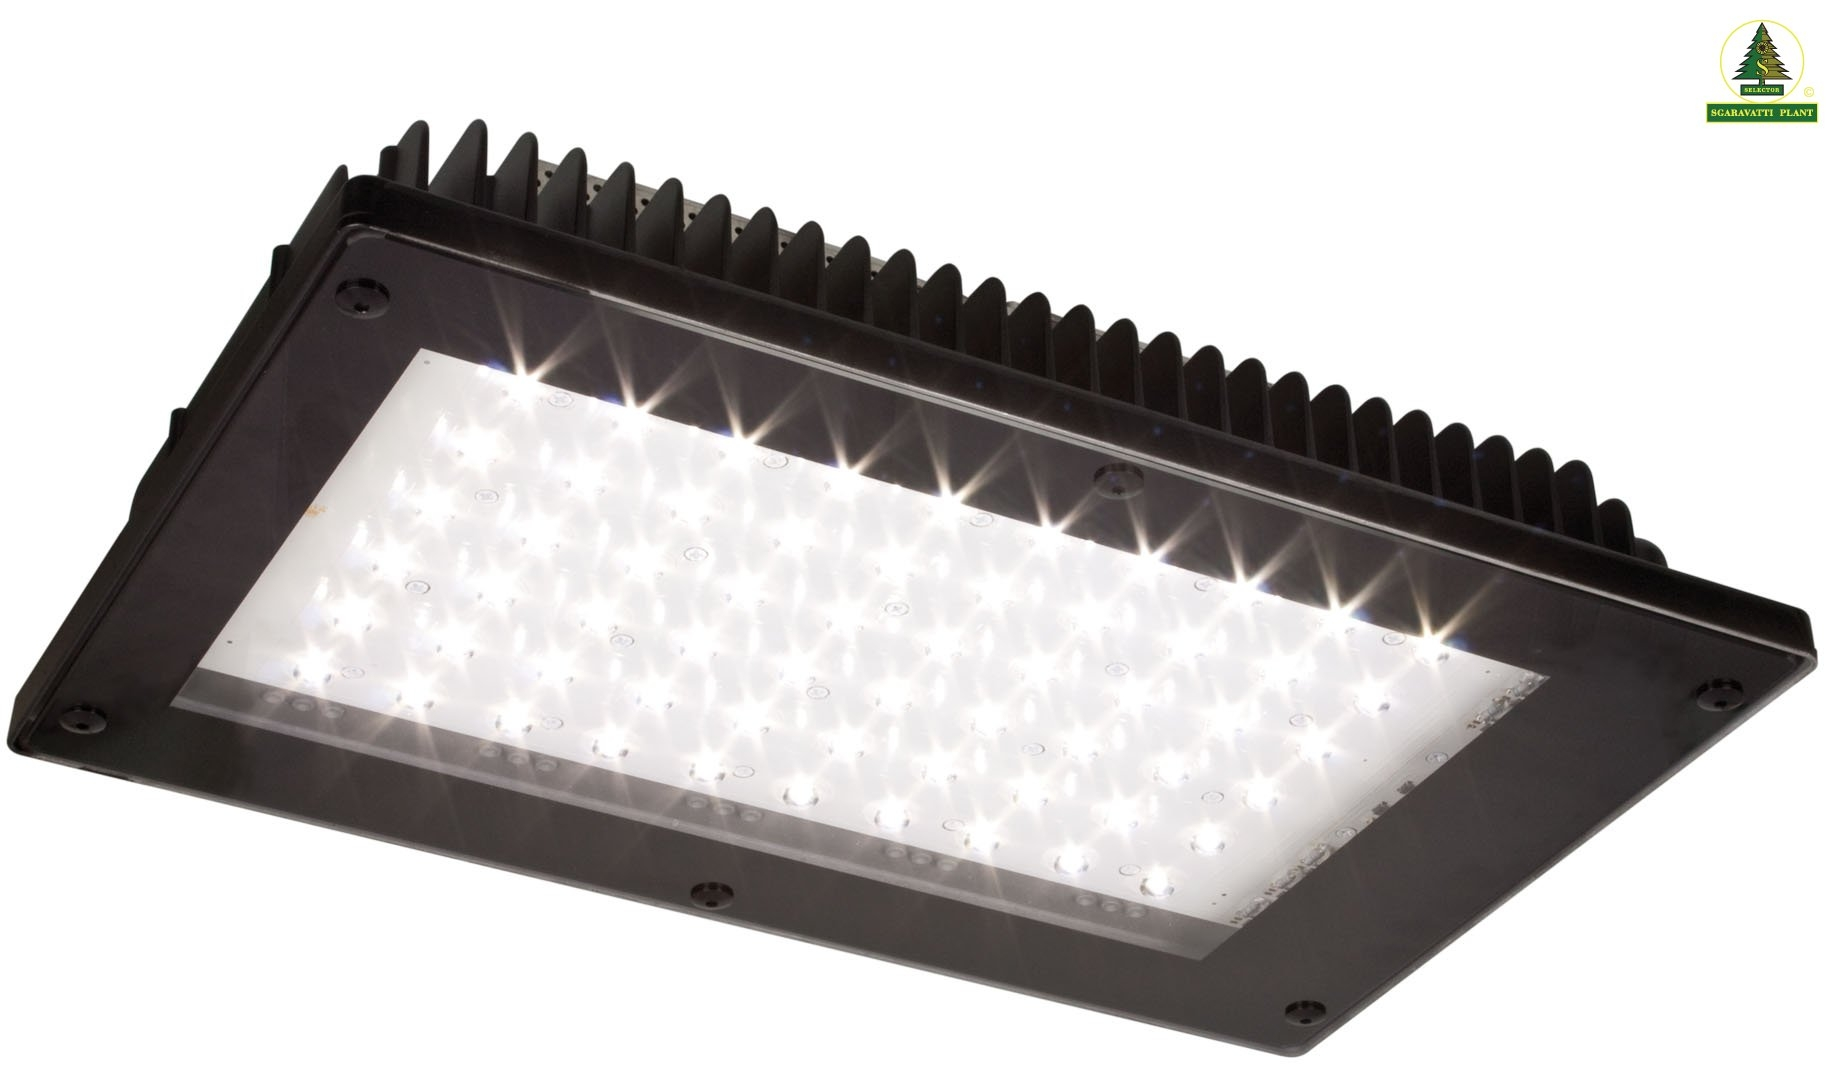 Luci a led per interni u lampada per in serra radiant with for Segnapasso led per scale interne